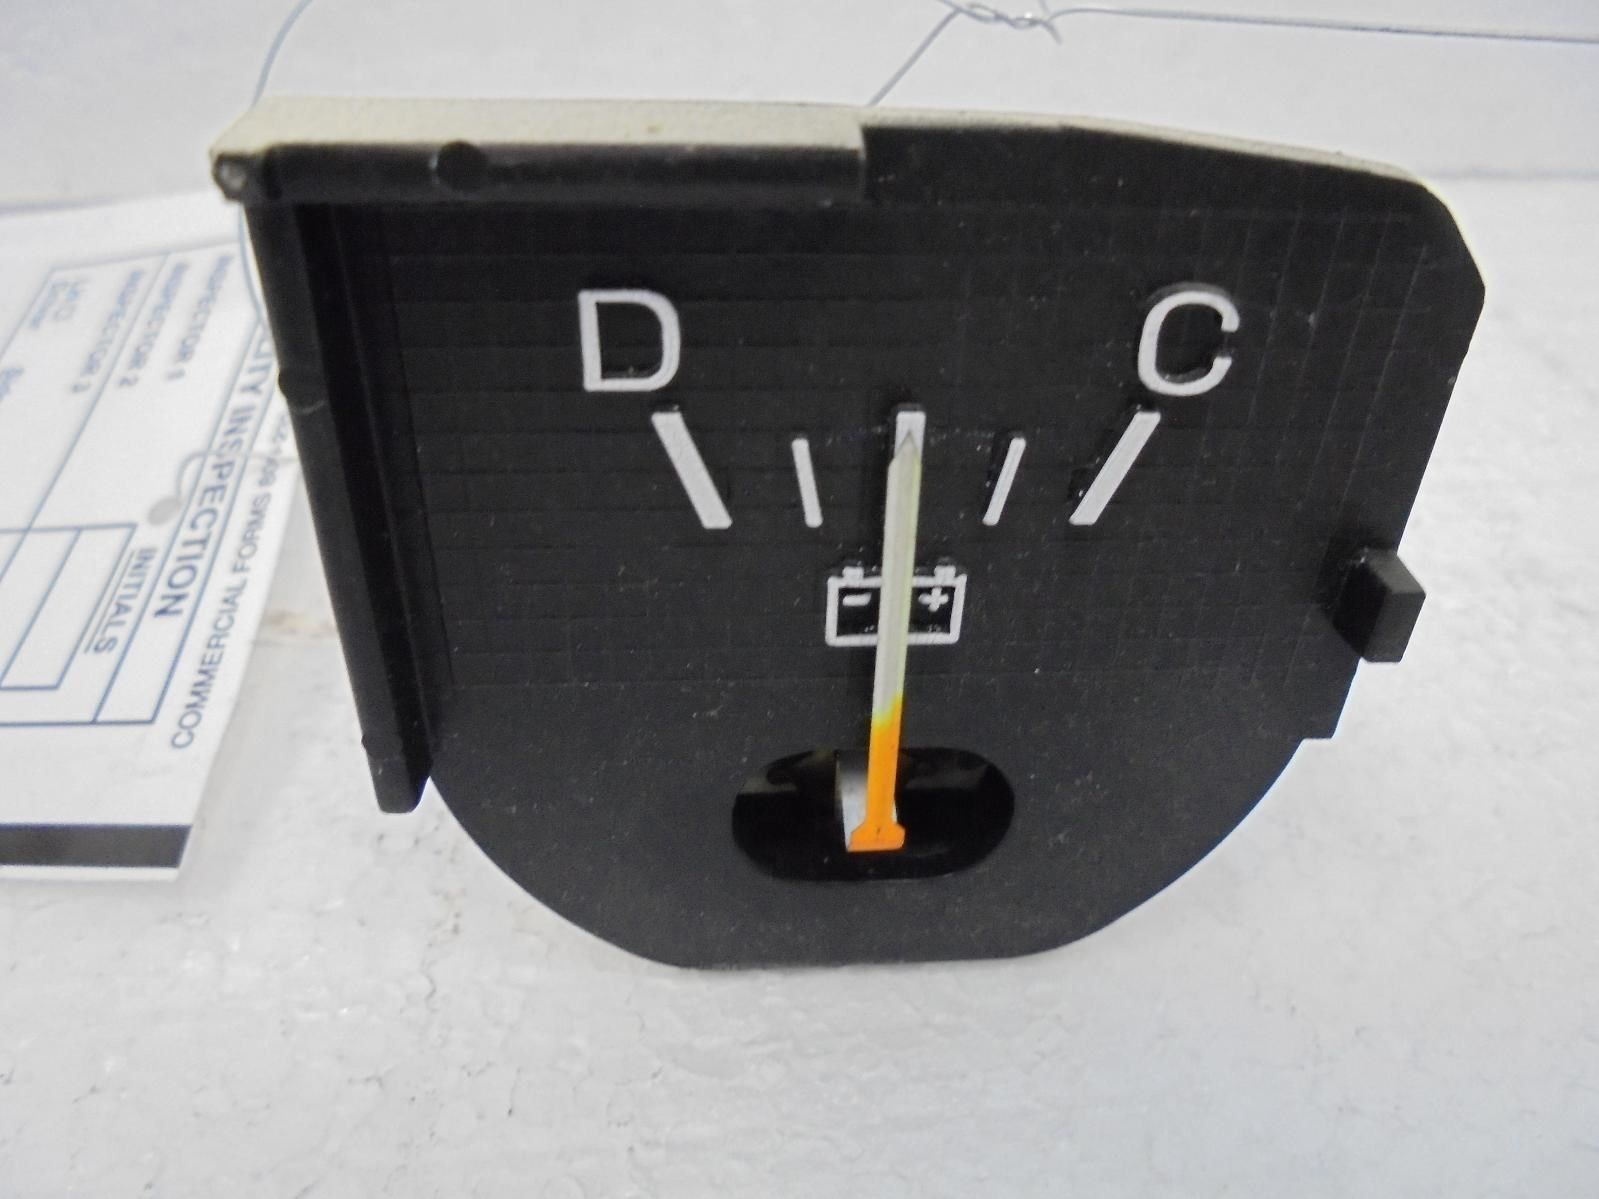 Ford F150 Dash Ammeter Gauge F250 F350 Bronco E0tf 10671 80 81 82 84 1980 Gauges 83